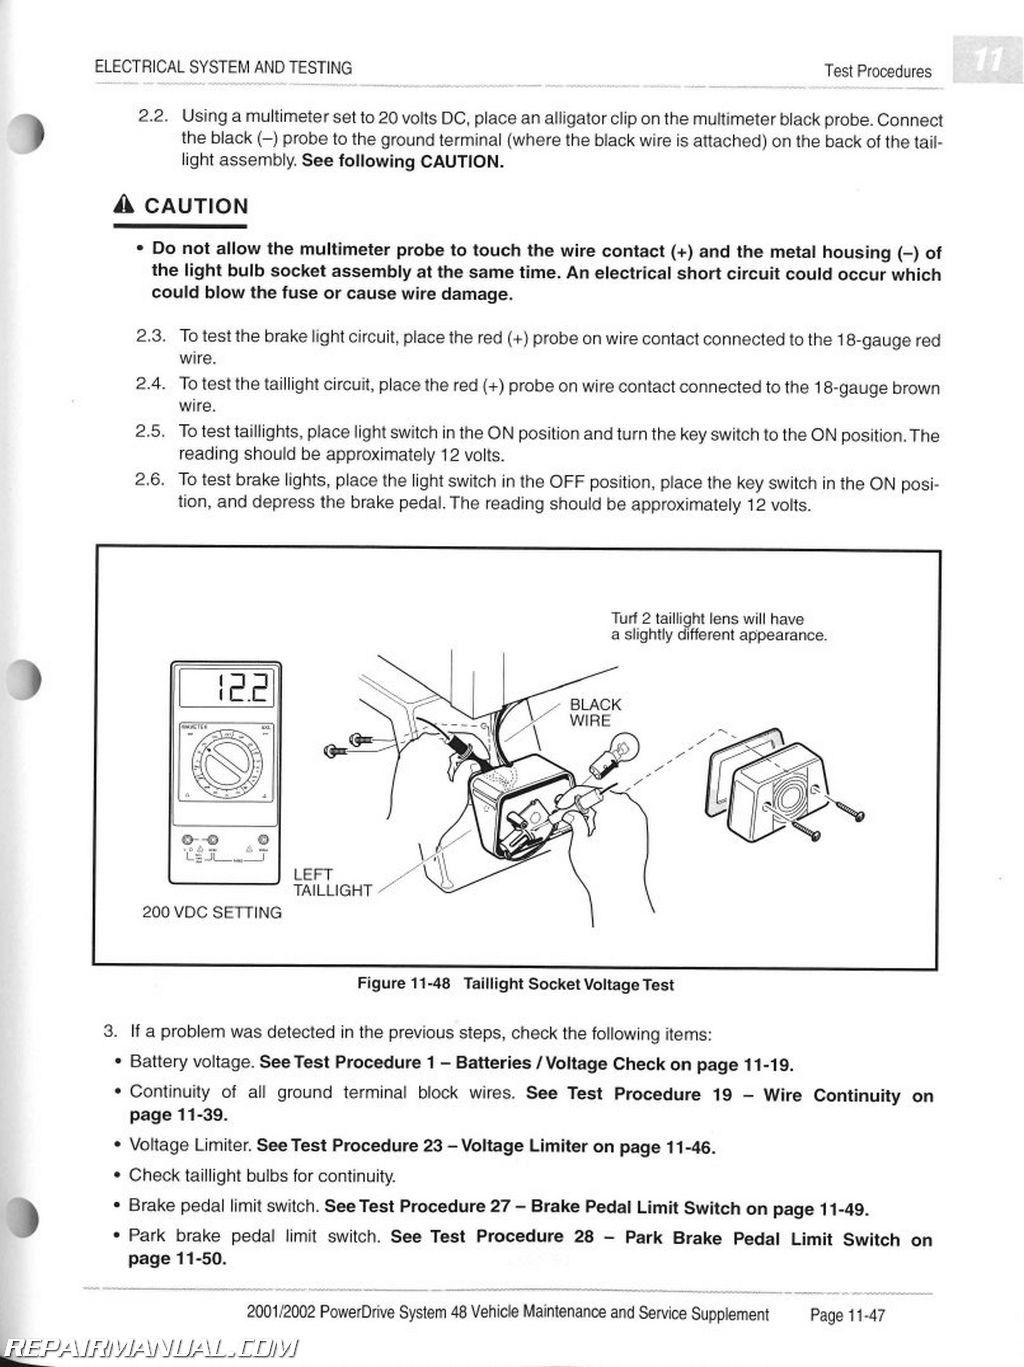 2001 club car wiring diagram clarion cz302 2002 powerdrive system 48 maintenance and